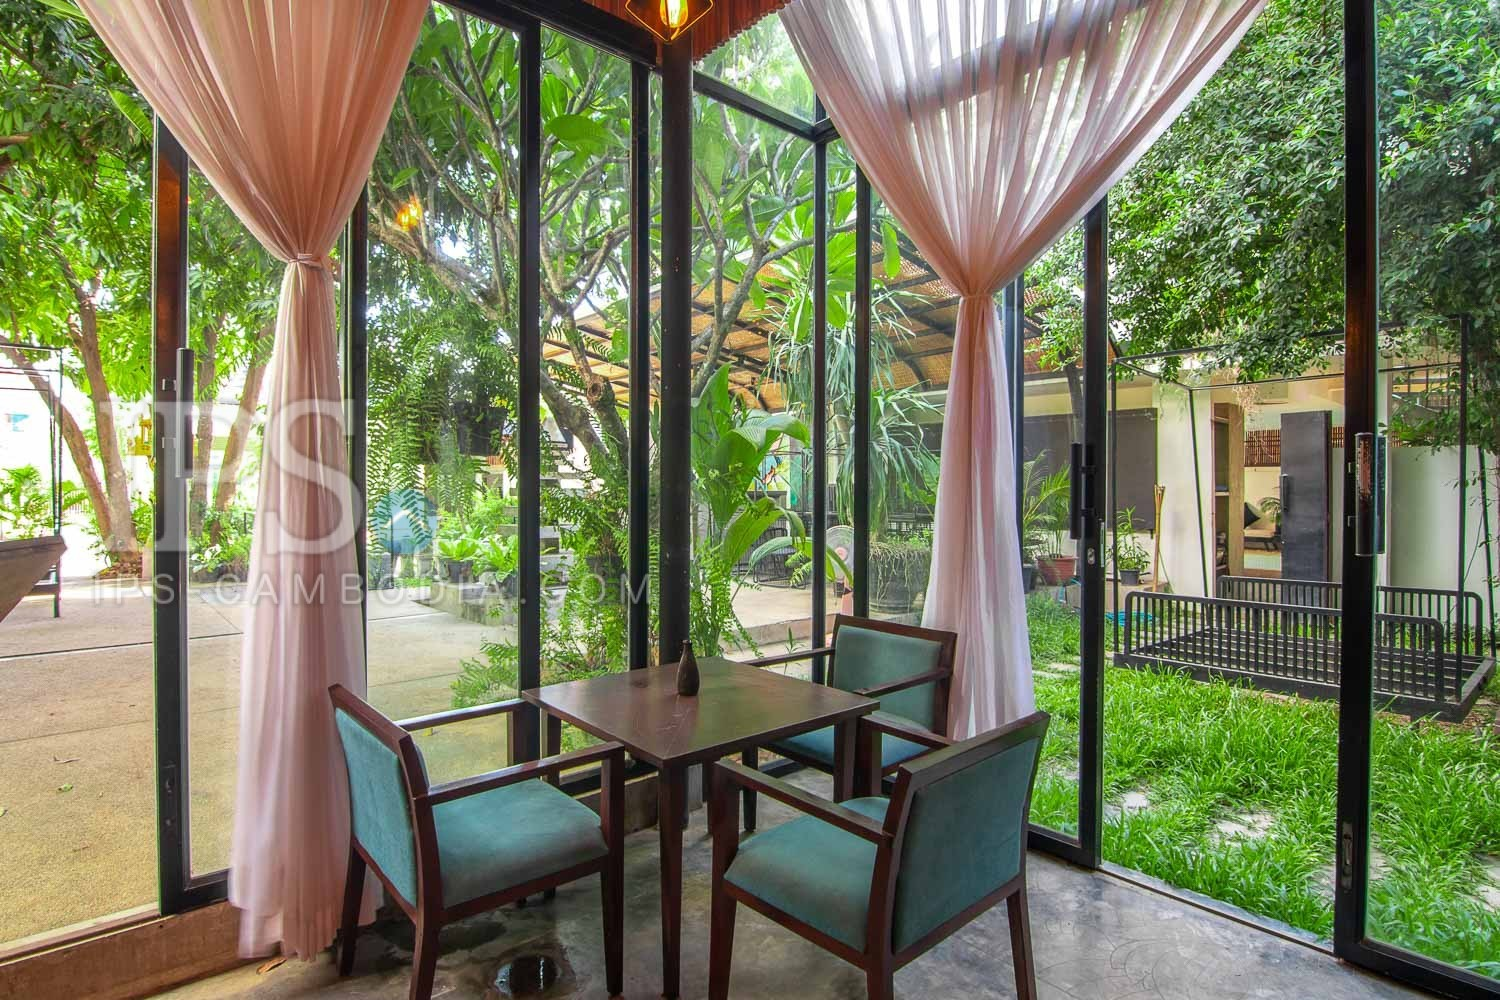 10 Bedroom Hotel For Sale - Night Market area, Siem Reap